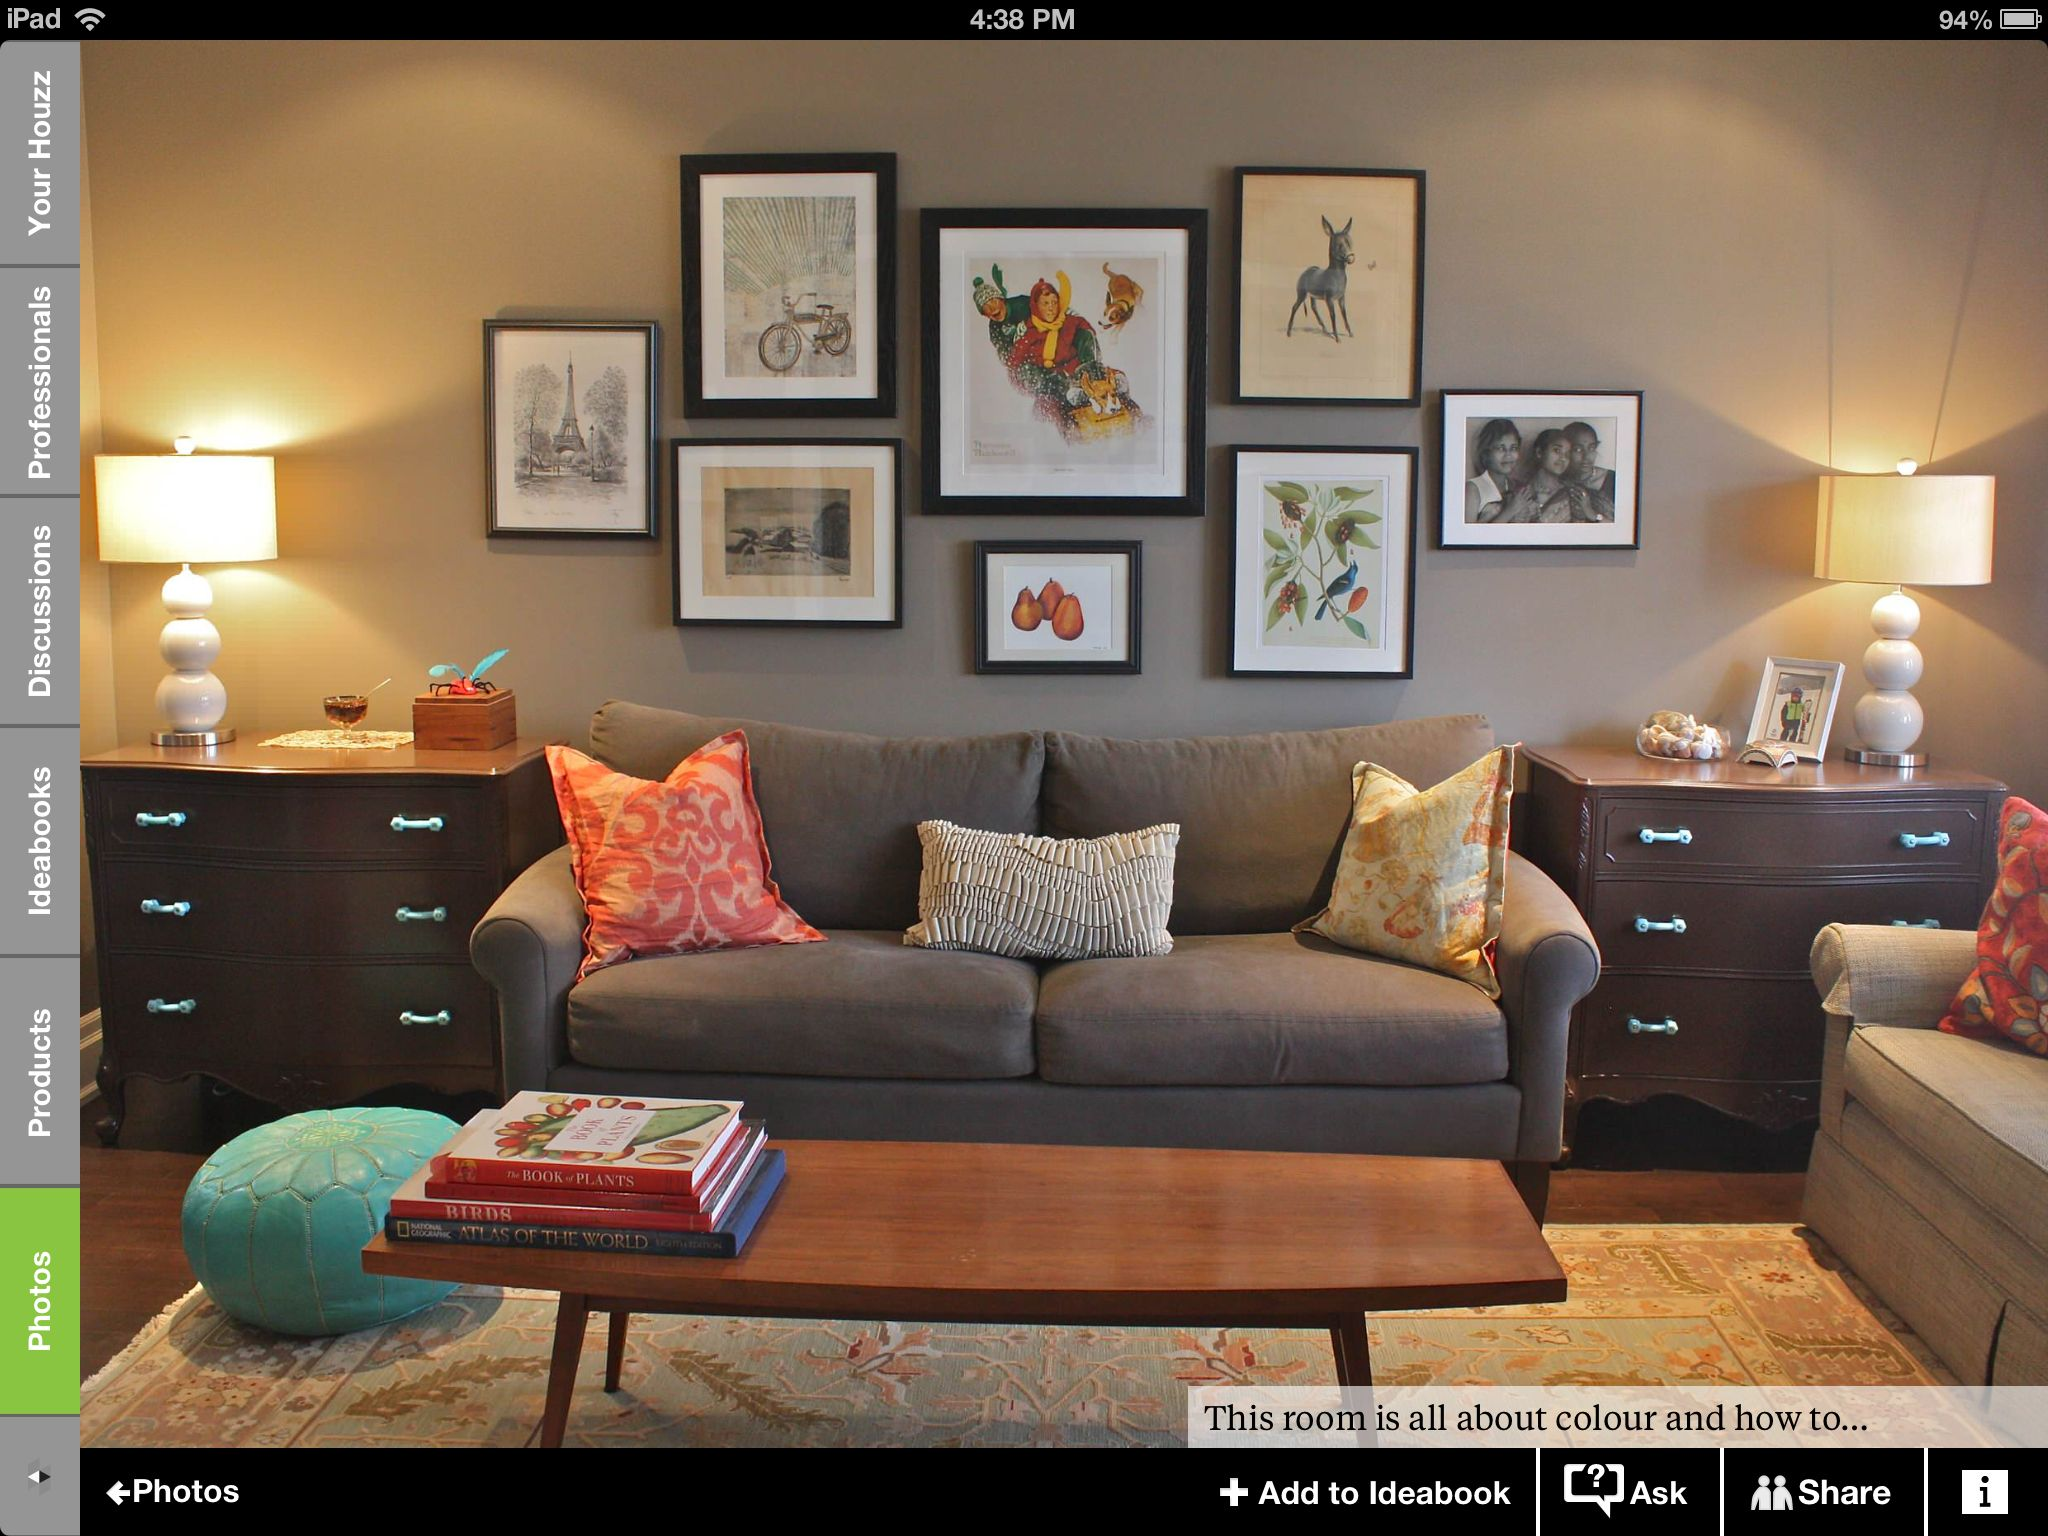 Merveilleux Colors Are Nice. I Like The Coral Pillow Against The Neutral Sofa And  Walls. Also Repeated In The Stack Of Books And Rockwell Pic.